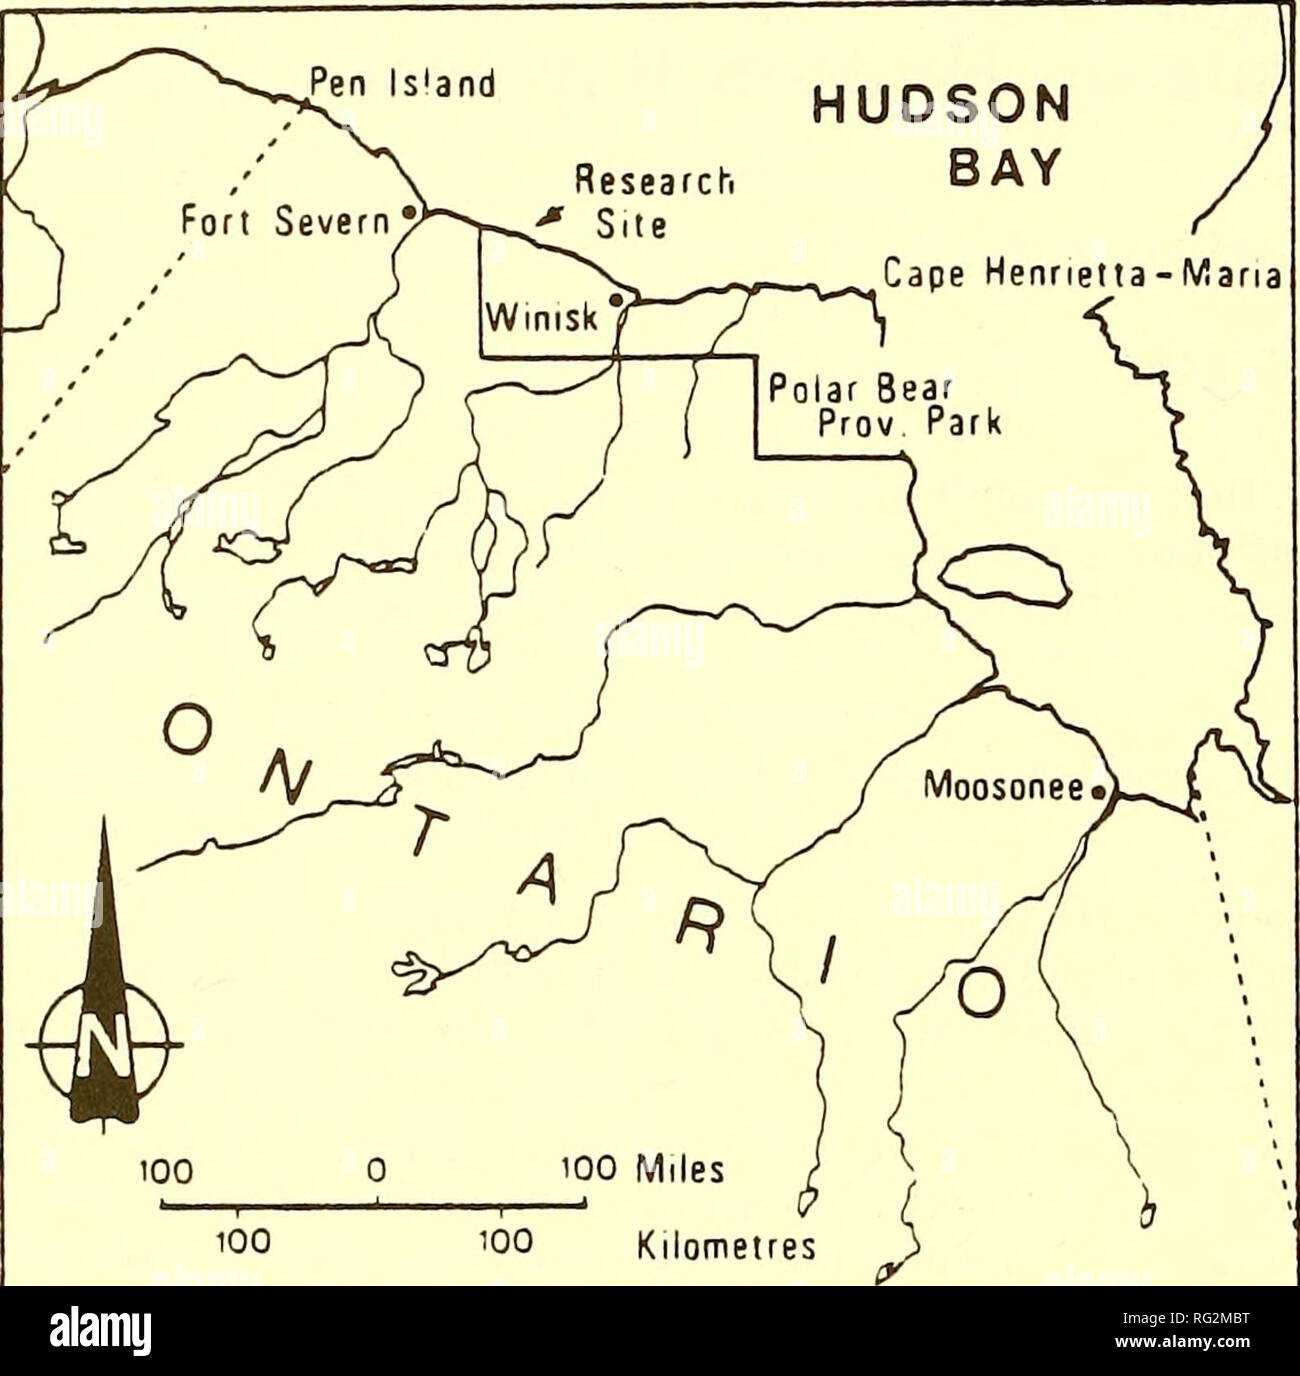 North Arrow On Map Of Canada.The Canadian Field Naturalist 336 The Canadian Field Naturalist Vol